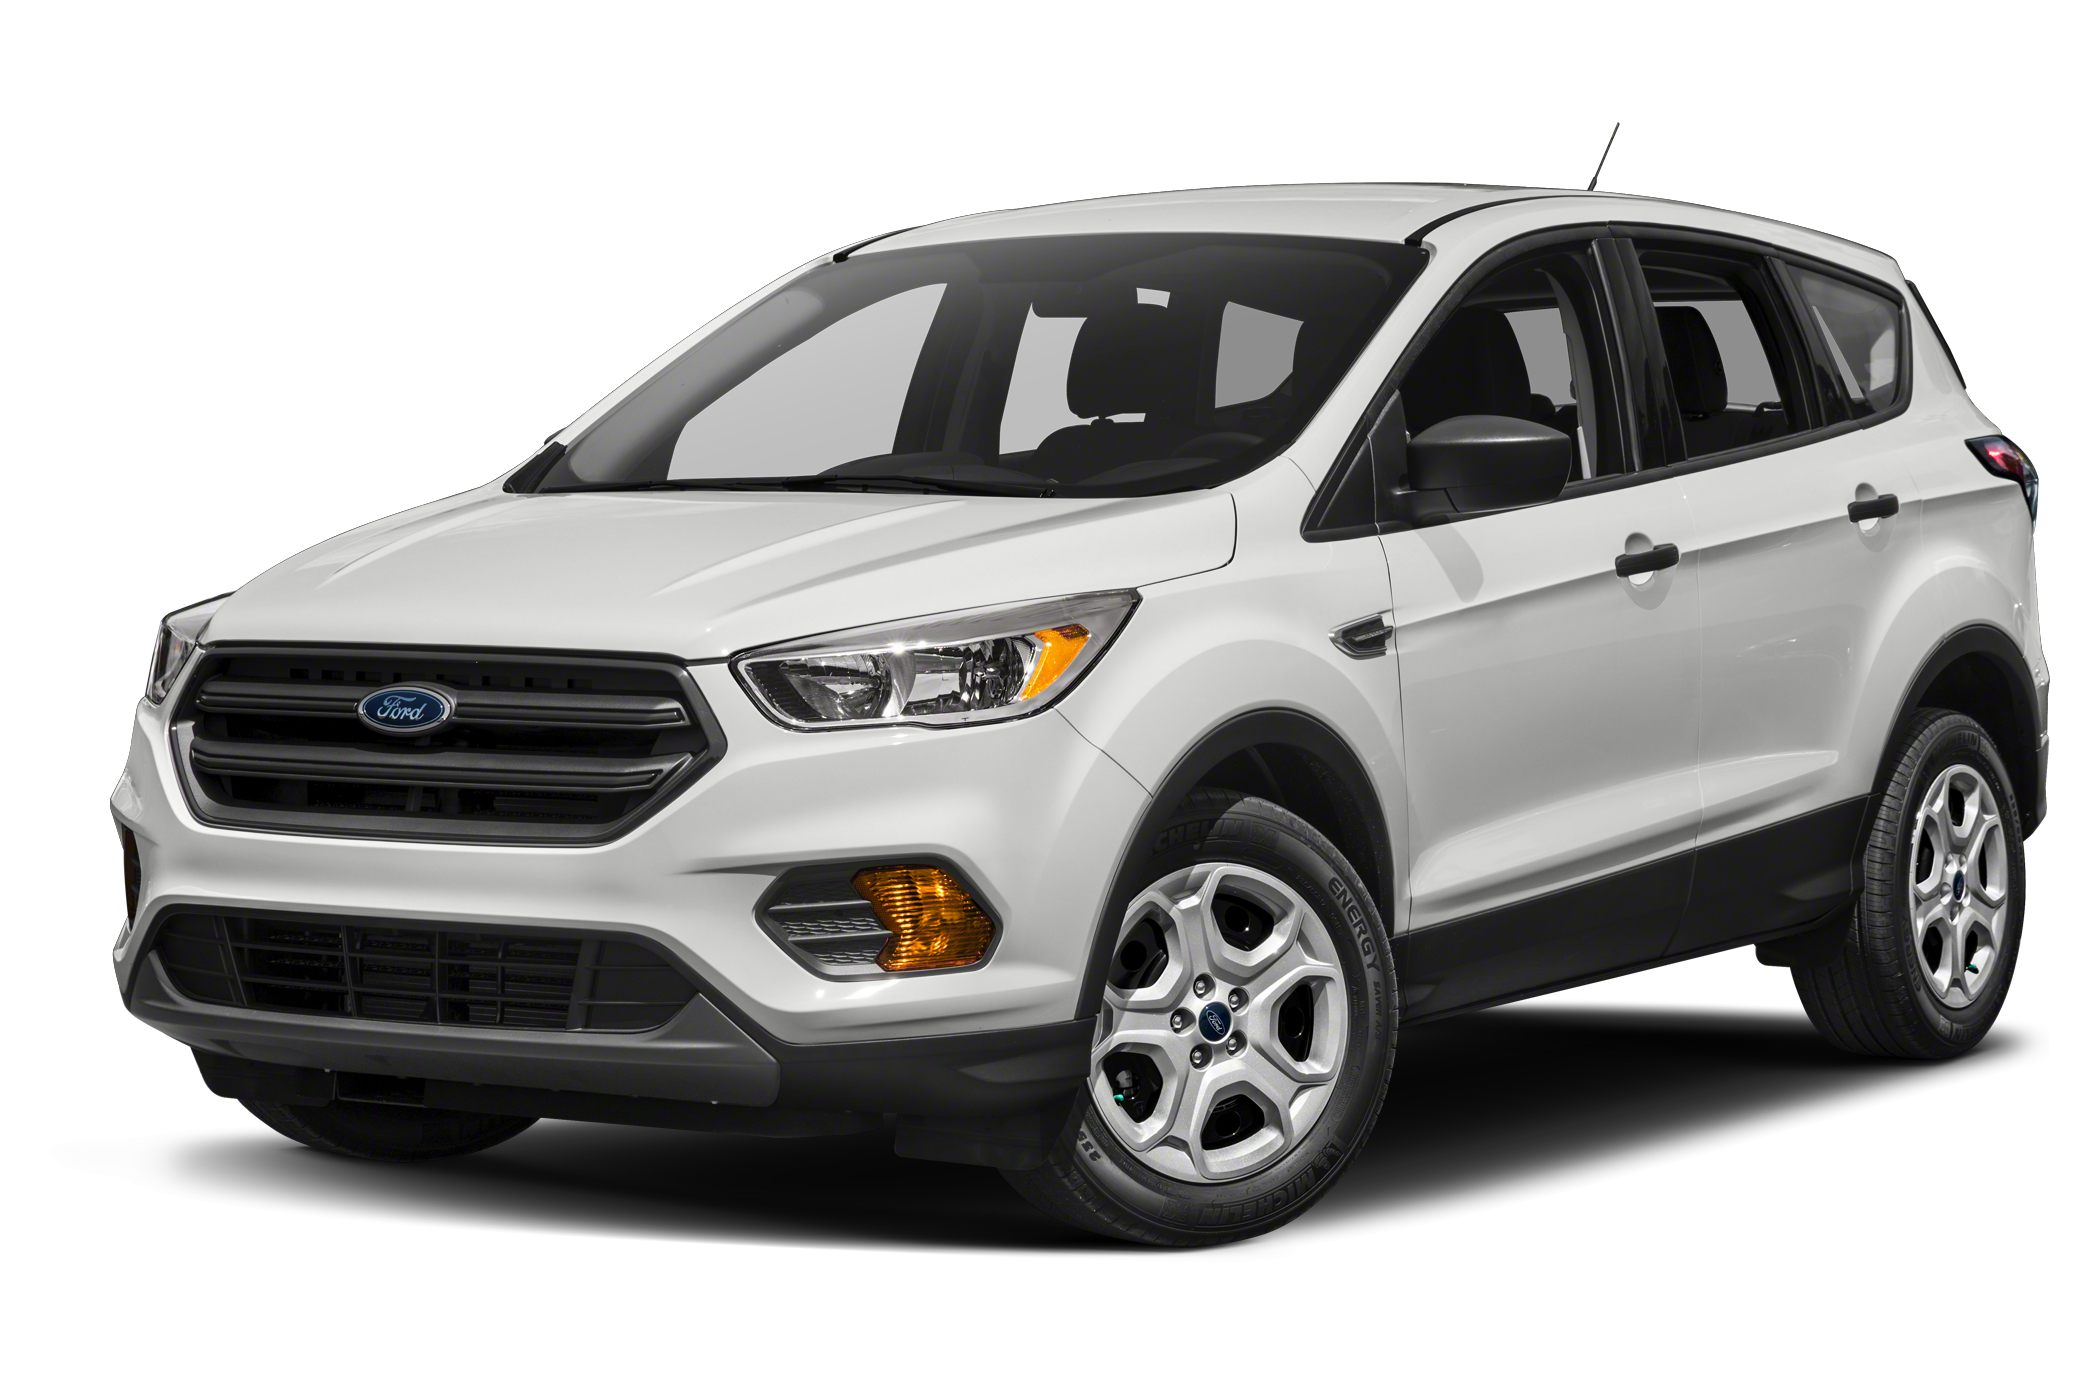 2017 Ford Escape SE Check out this great low mileage vehicle This is an exceptional vehicle at an